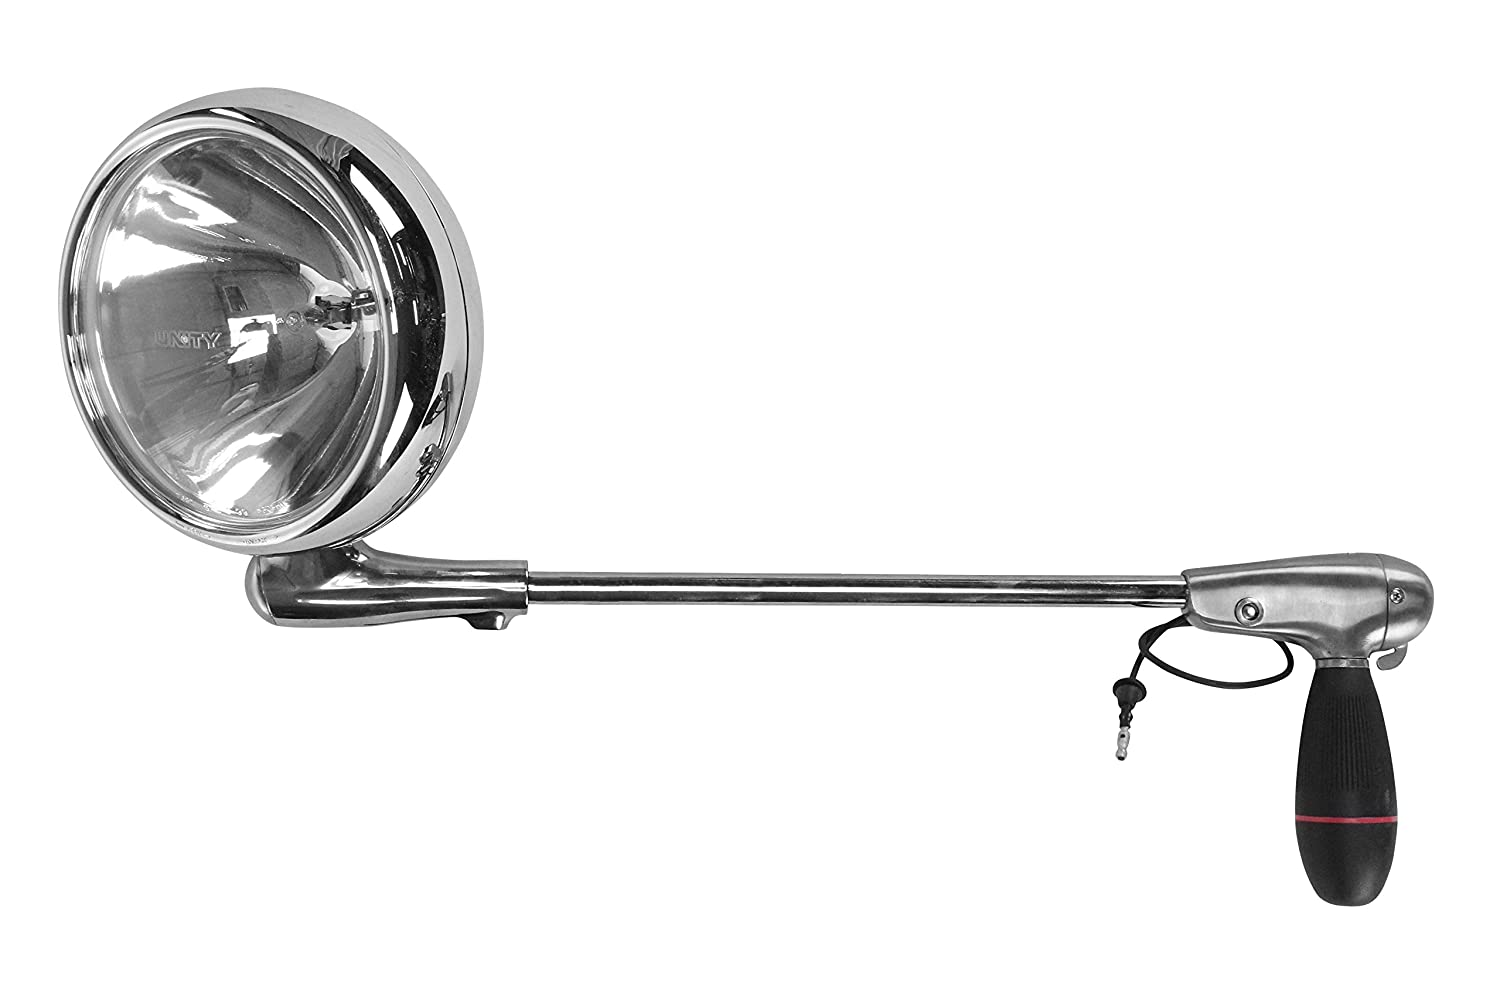 6 inch Driver side WITH install kit 2006 Mack VISION FLATLOW-RISE ROOF Side Roof mount spotlight 100W Halogen -Chrome